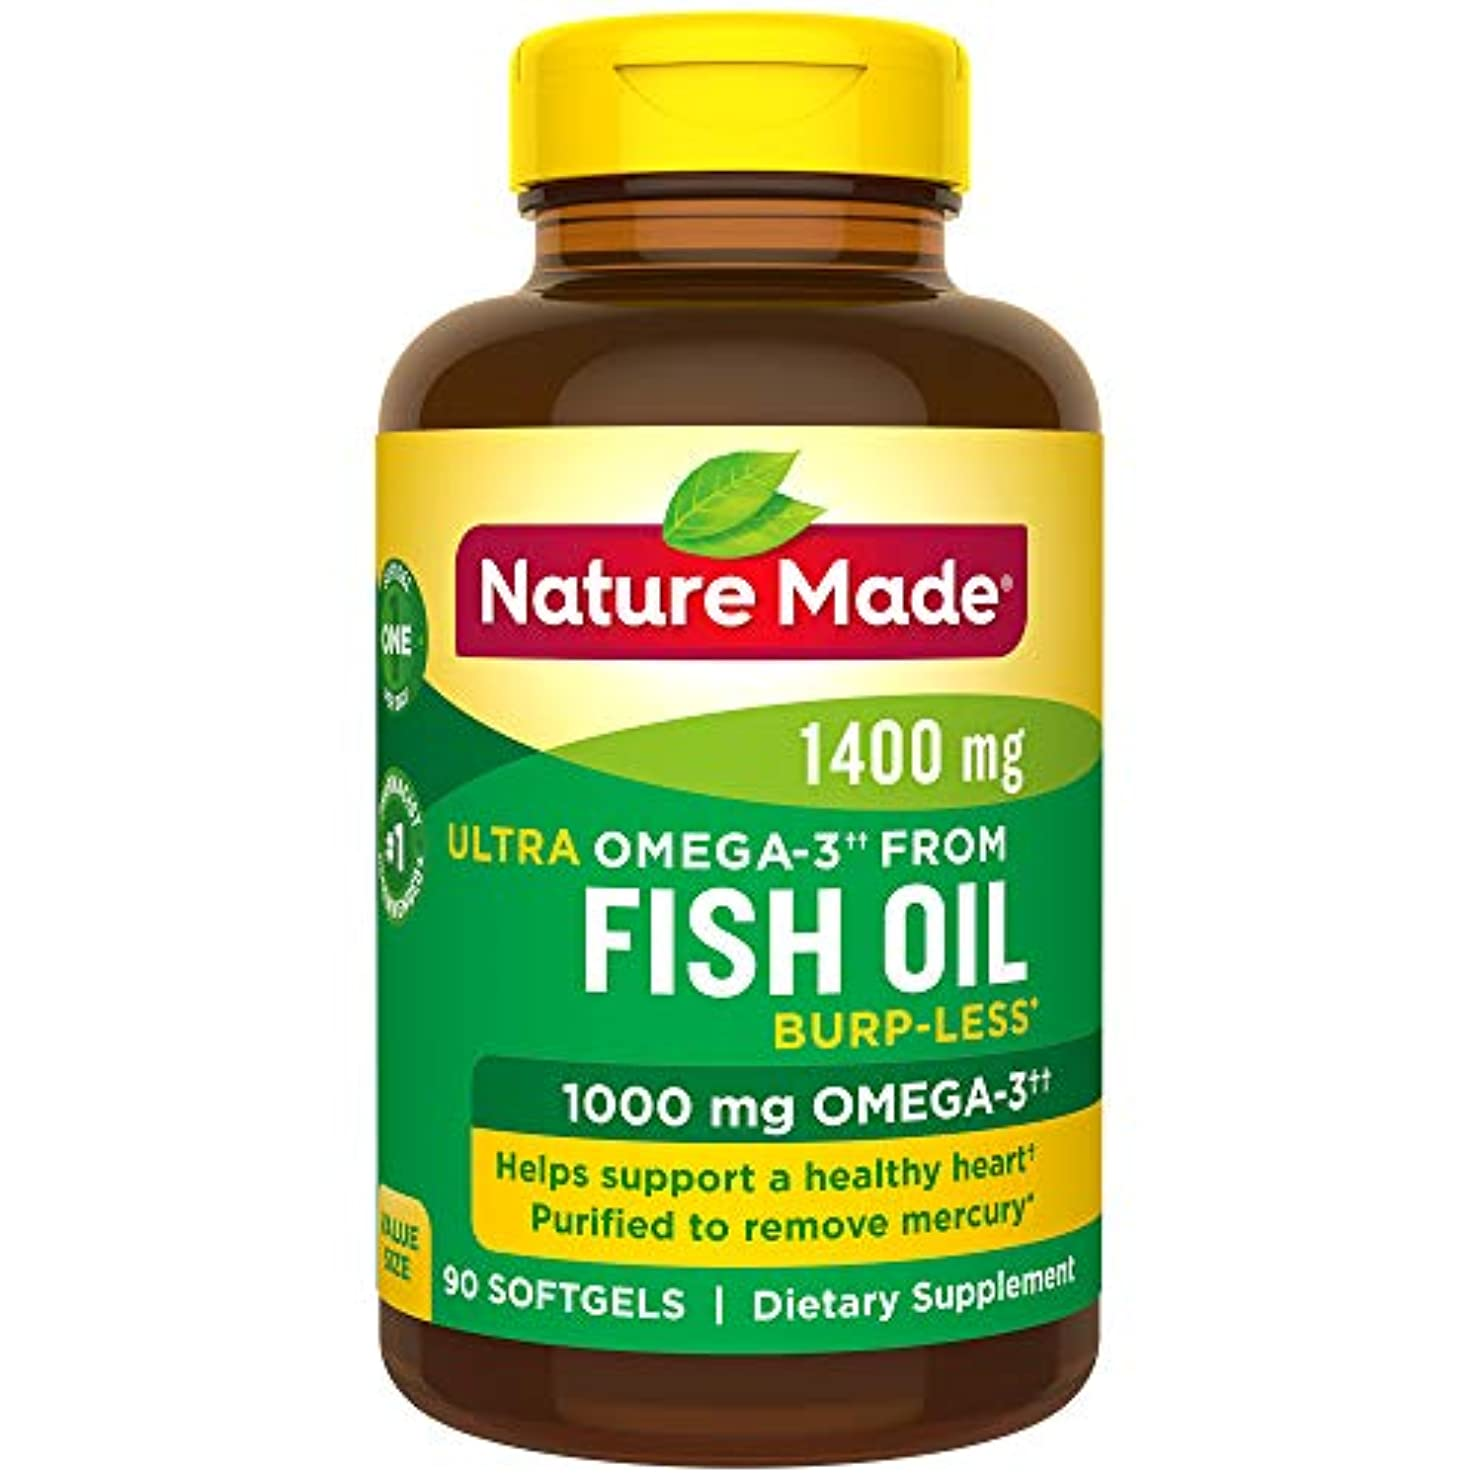 Nature Made Ultra Omega-3 Fish Oil Value Size Softgel, 1400 mg, 90 Count 海外直送品